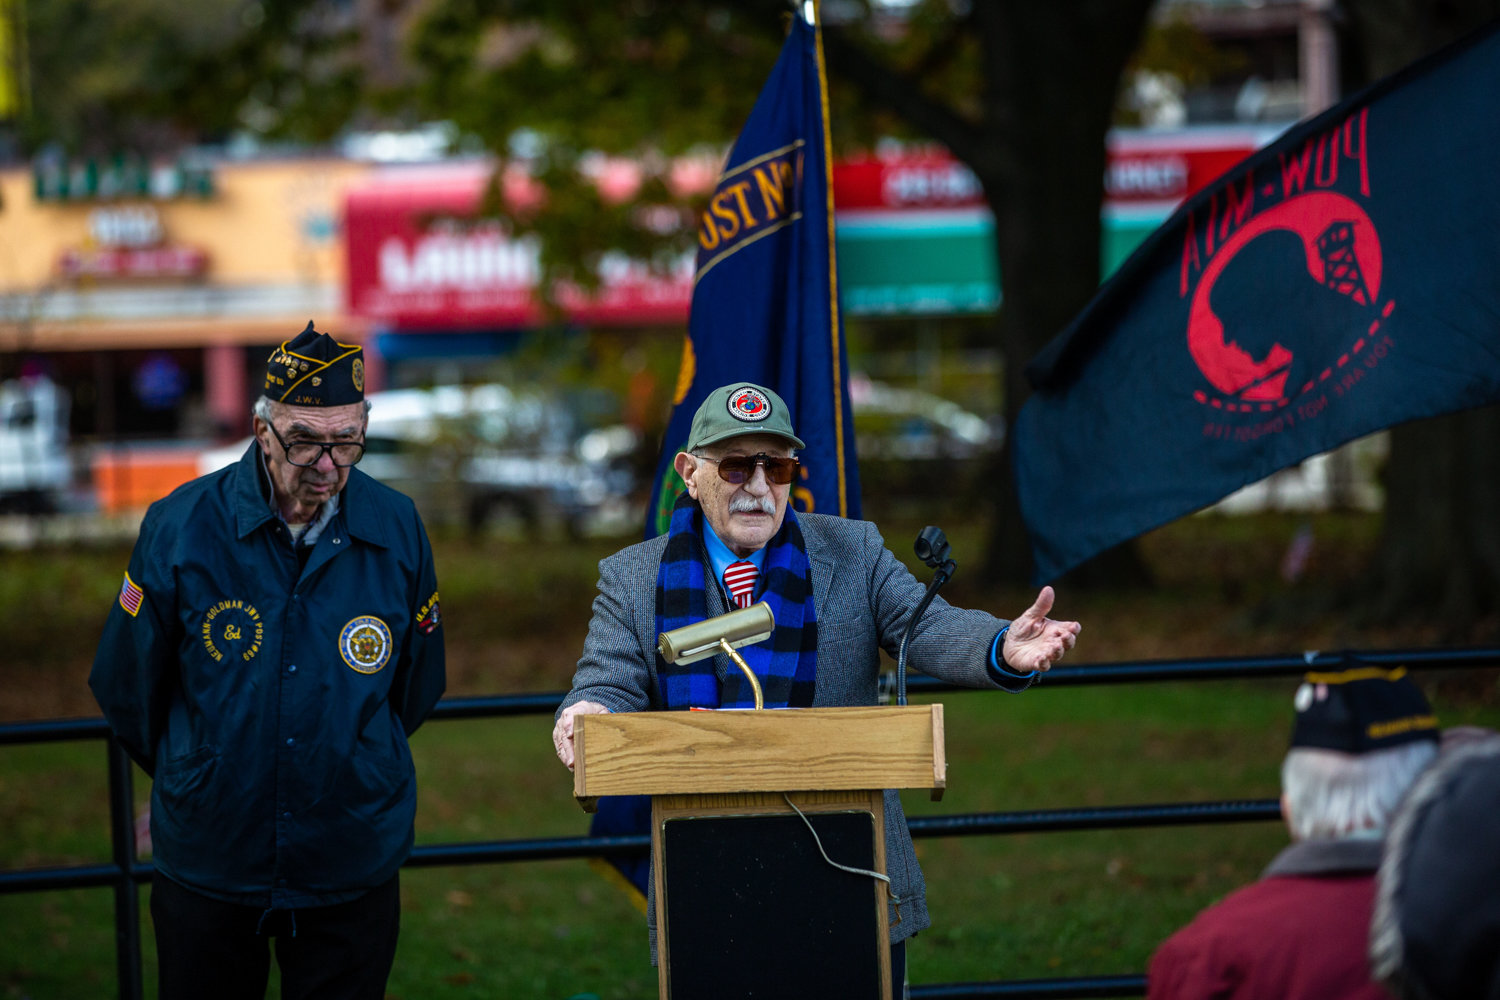 Korean War veteran Herb Barret speaks at a Veterans Day celebration in Van Cortlandt Park's Memorial Grove on Nov. 3. Barret inaugurated the celebration with fellow veteran Donald Tannen, who passed away in 2014.